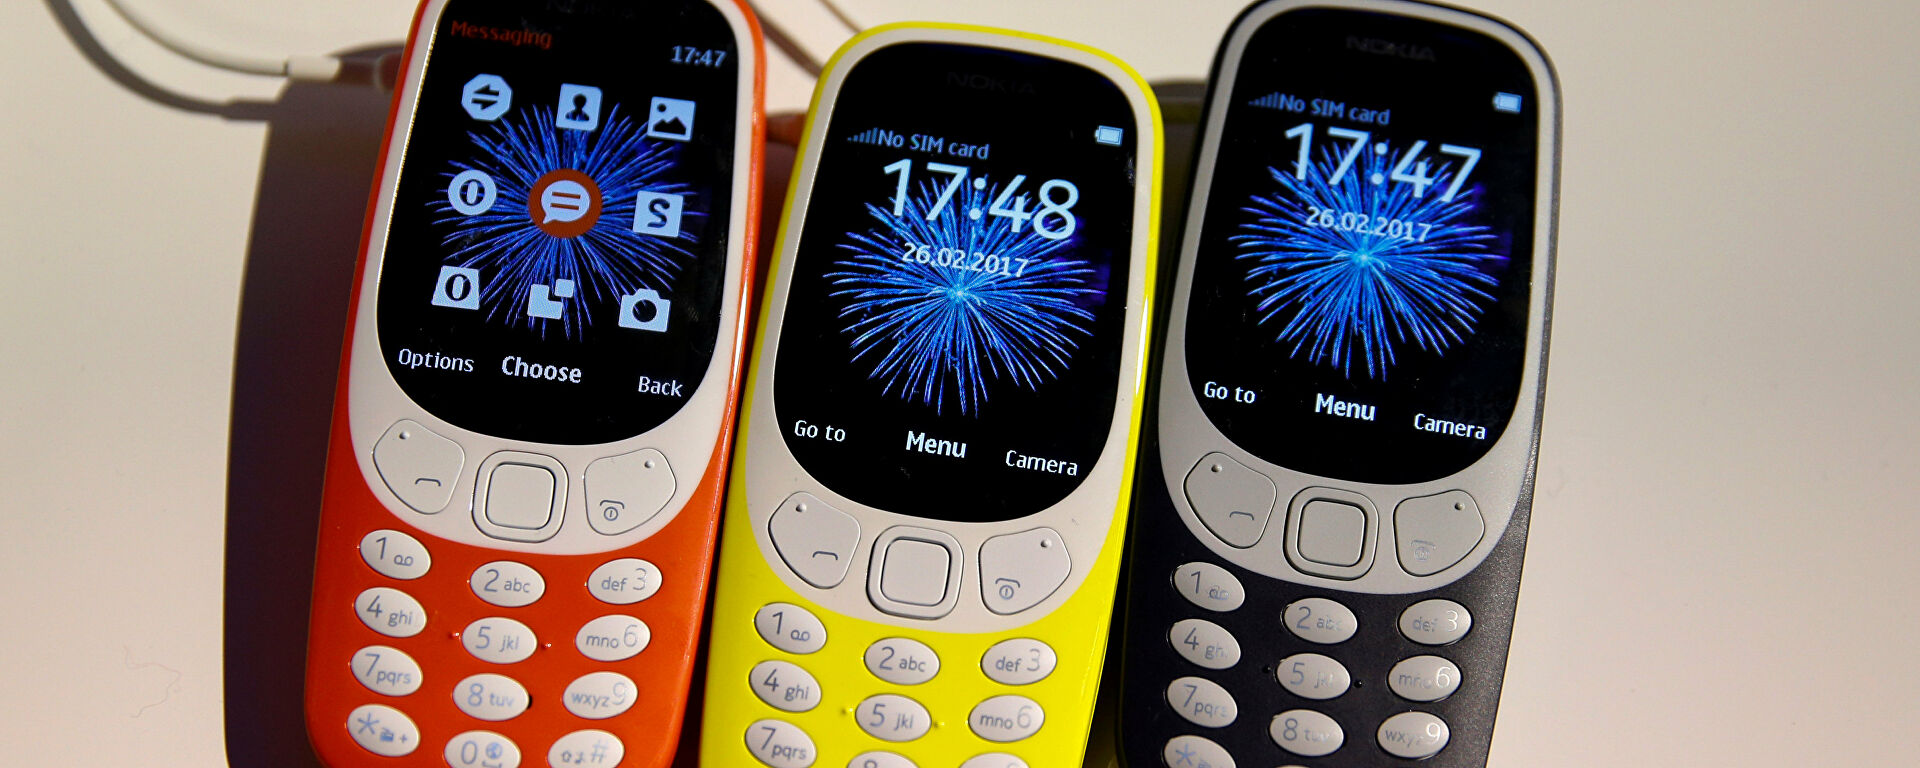 Nokia 3310 devices on display after their presentation ceremony at the Mobile World Congress in Barcelona, Spain, February 26, 2017. - Sputnik Mundo, 1920, 08.08.2021